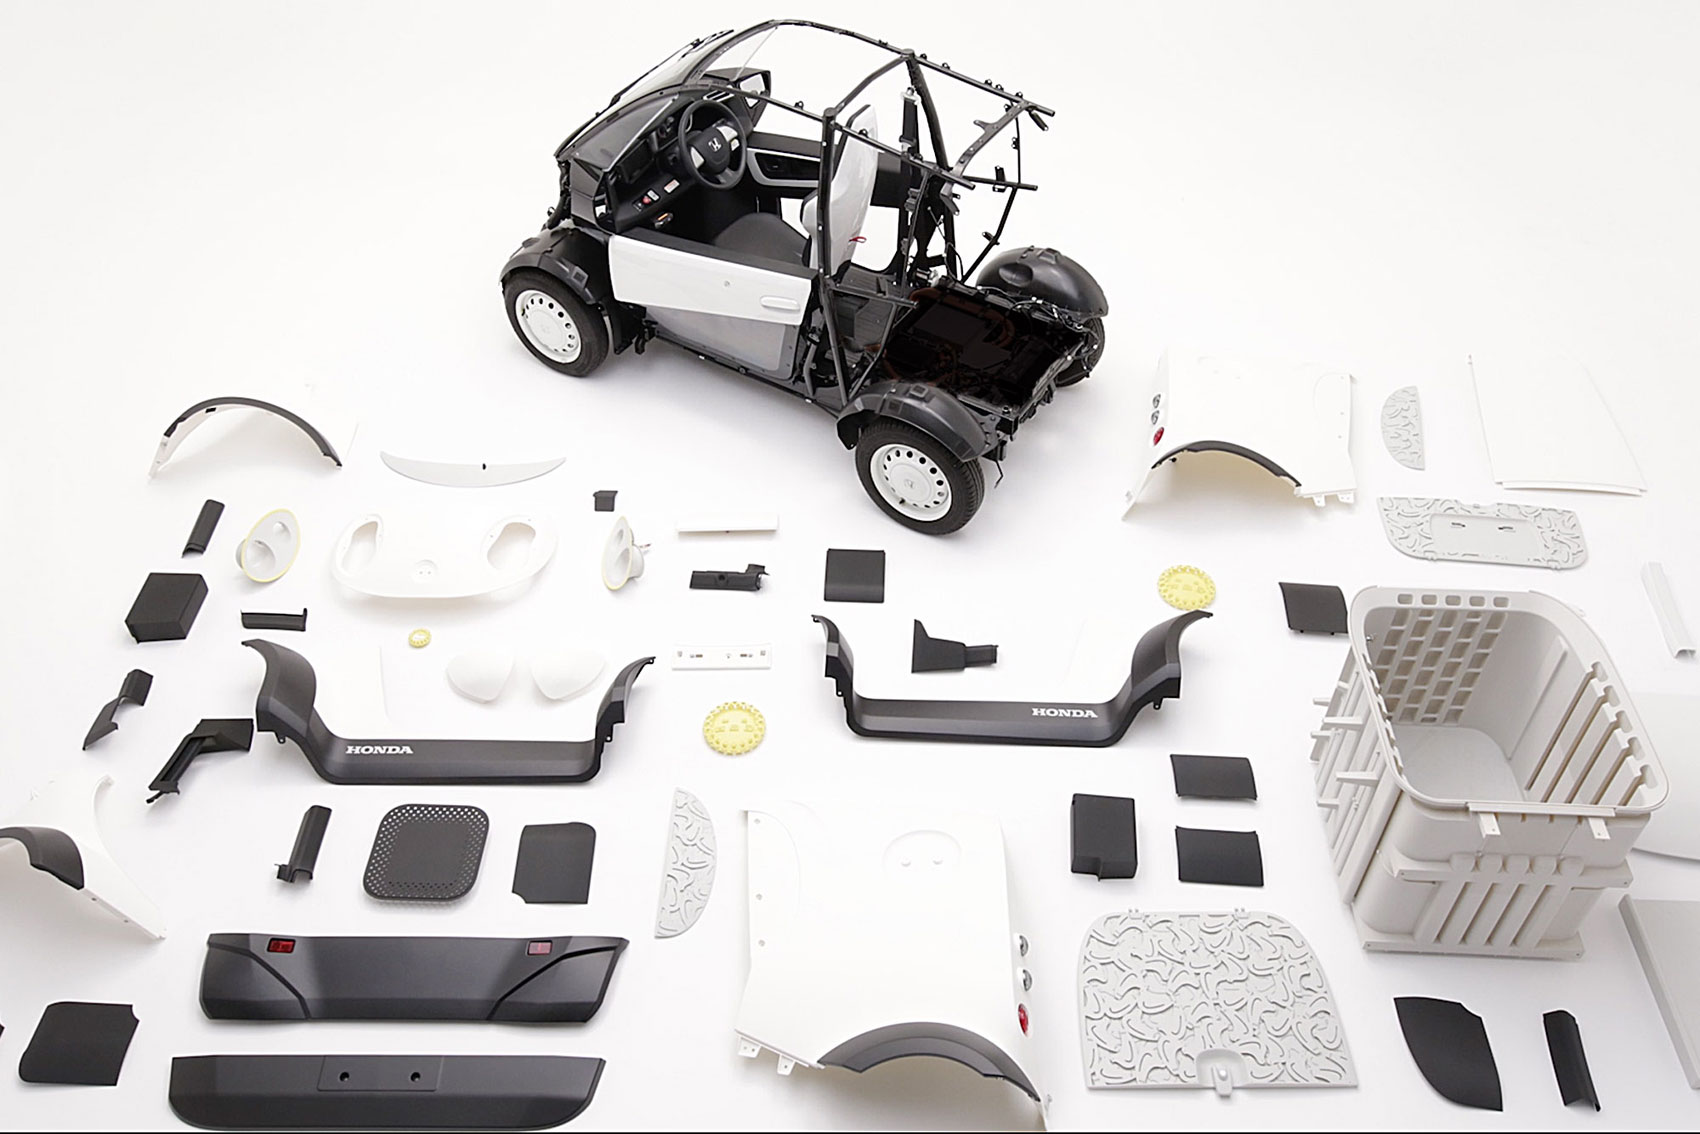 Will We Be Downloading Software And Printing Cars In The Future?